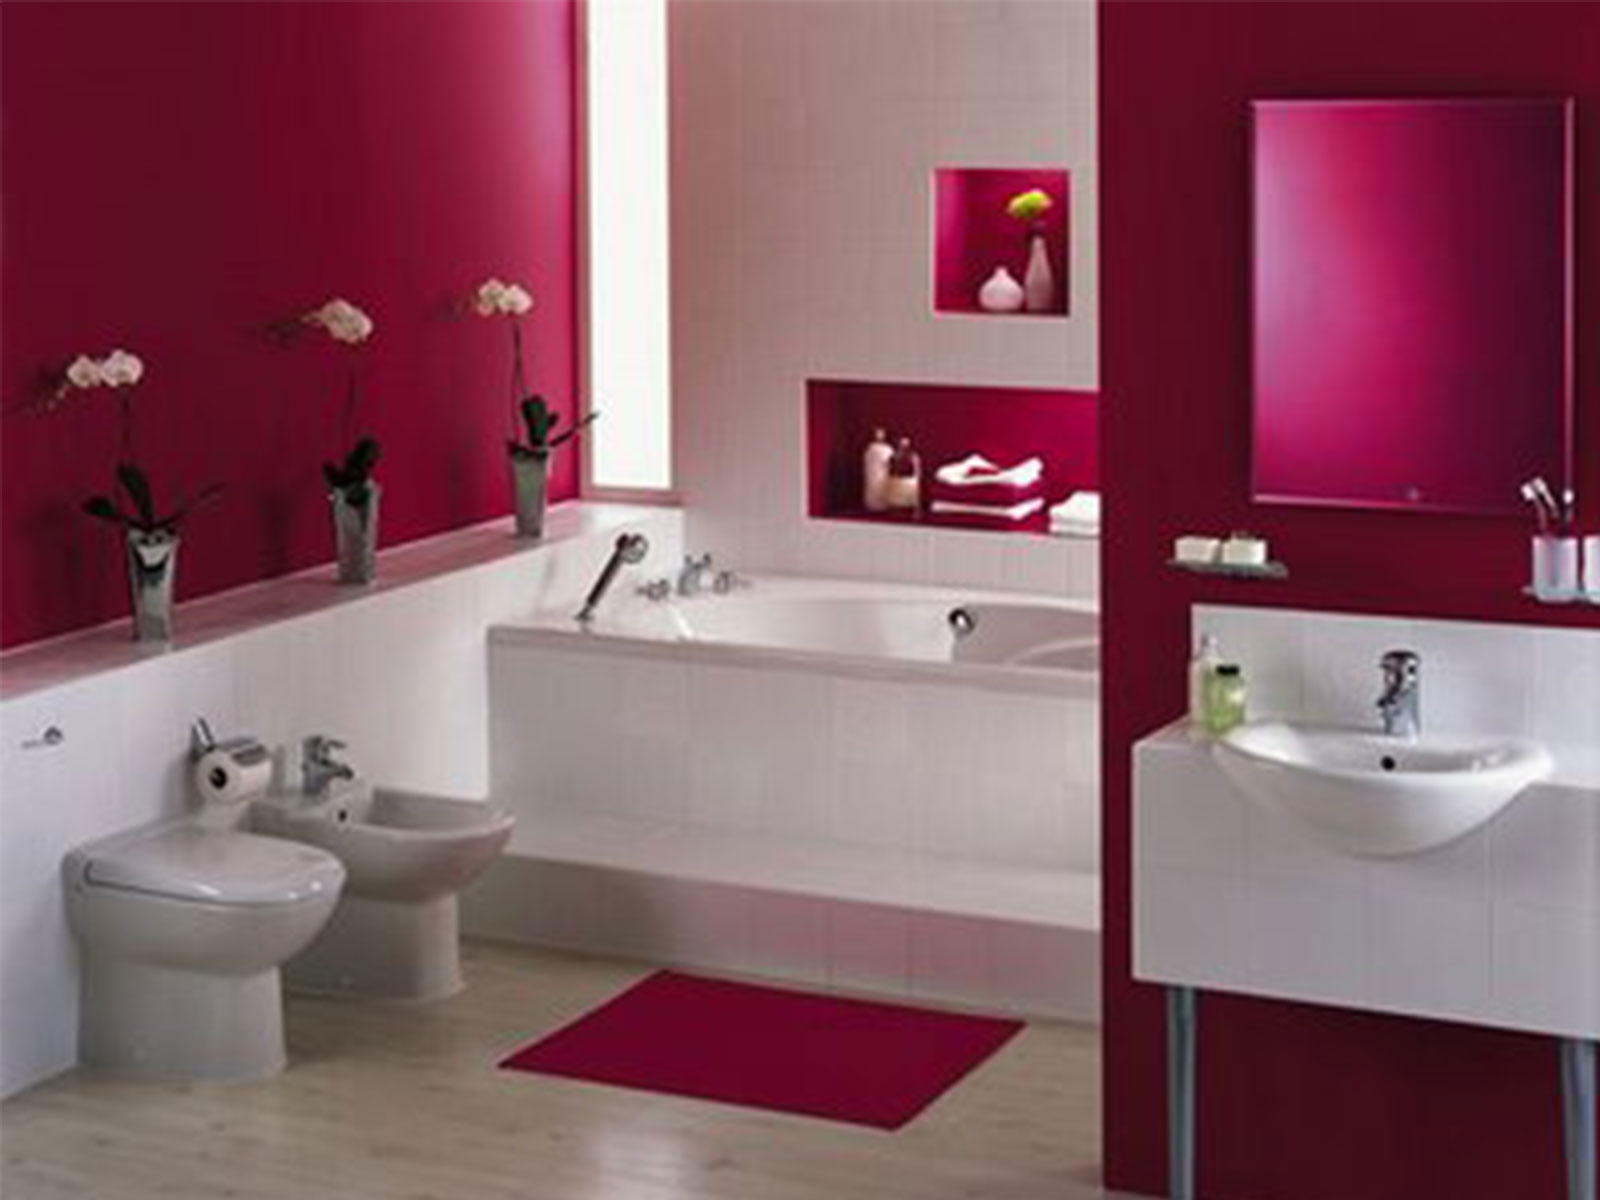 Teen Girls Bathroom - Teen bathroom sets for small bathroom ideas